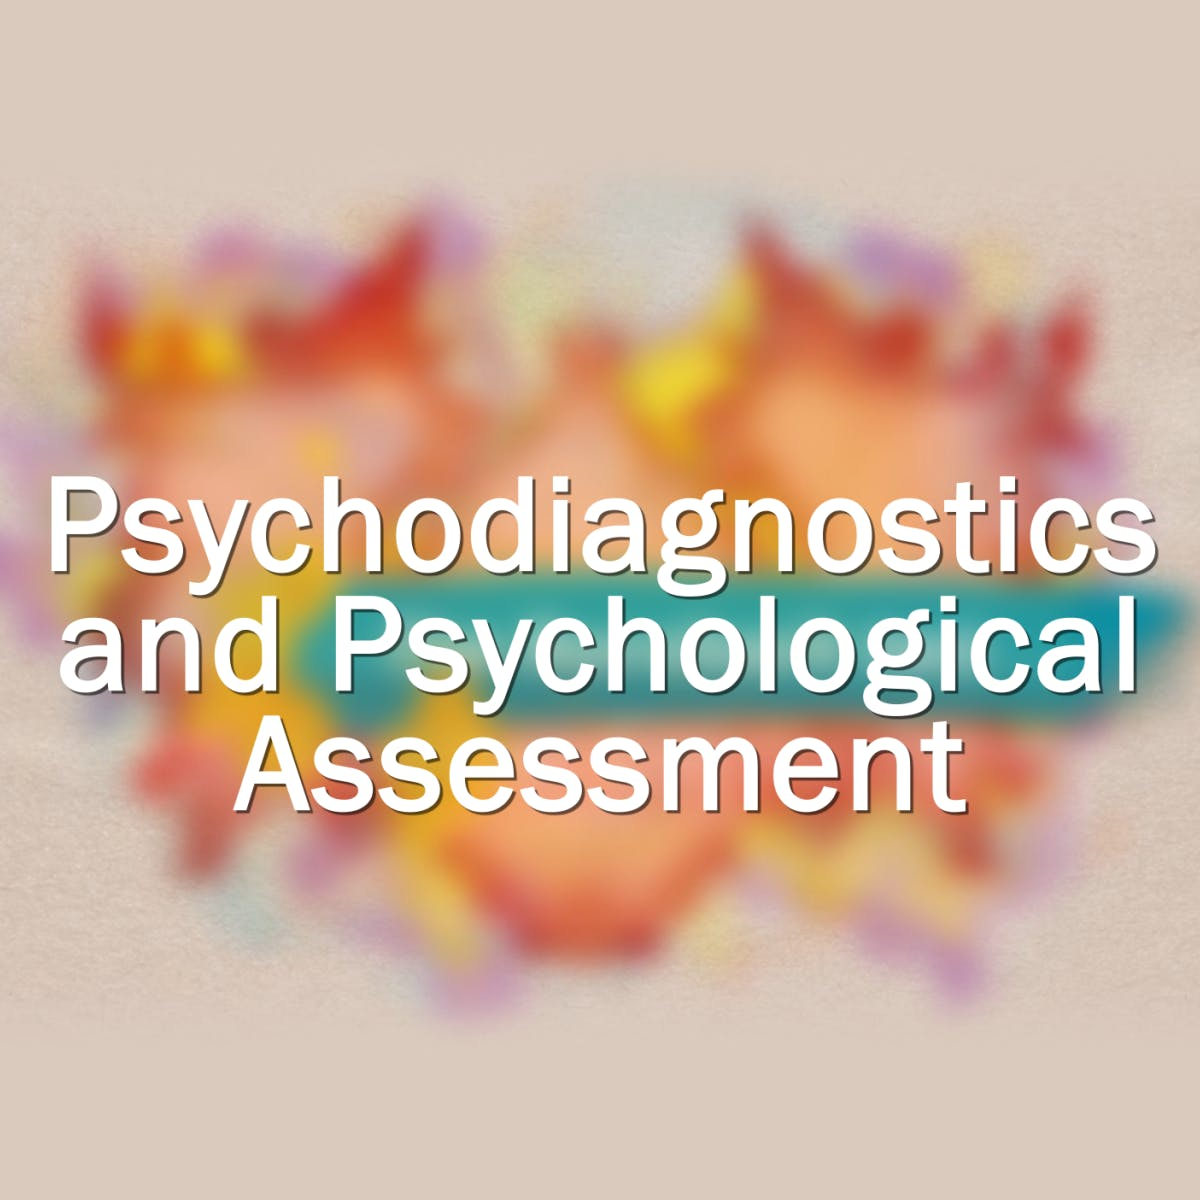 Psychodiagnostics and Psychological Assessment